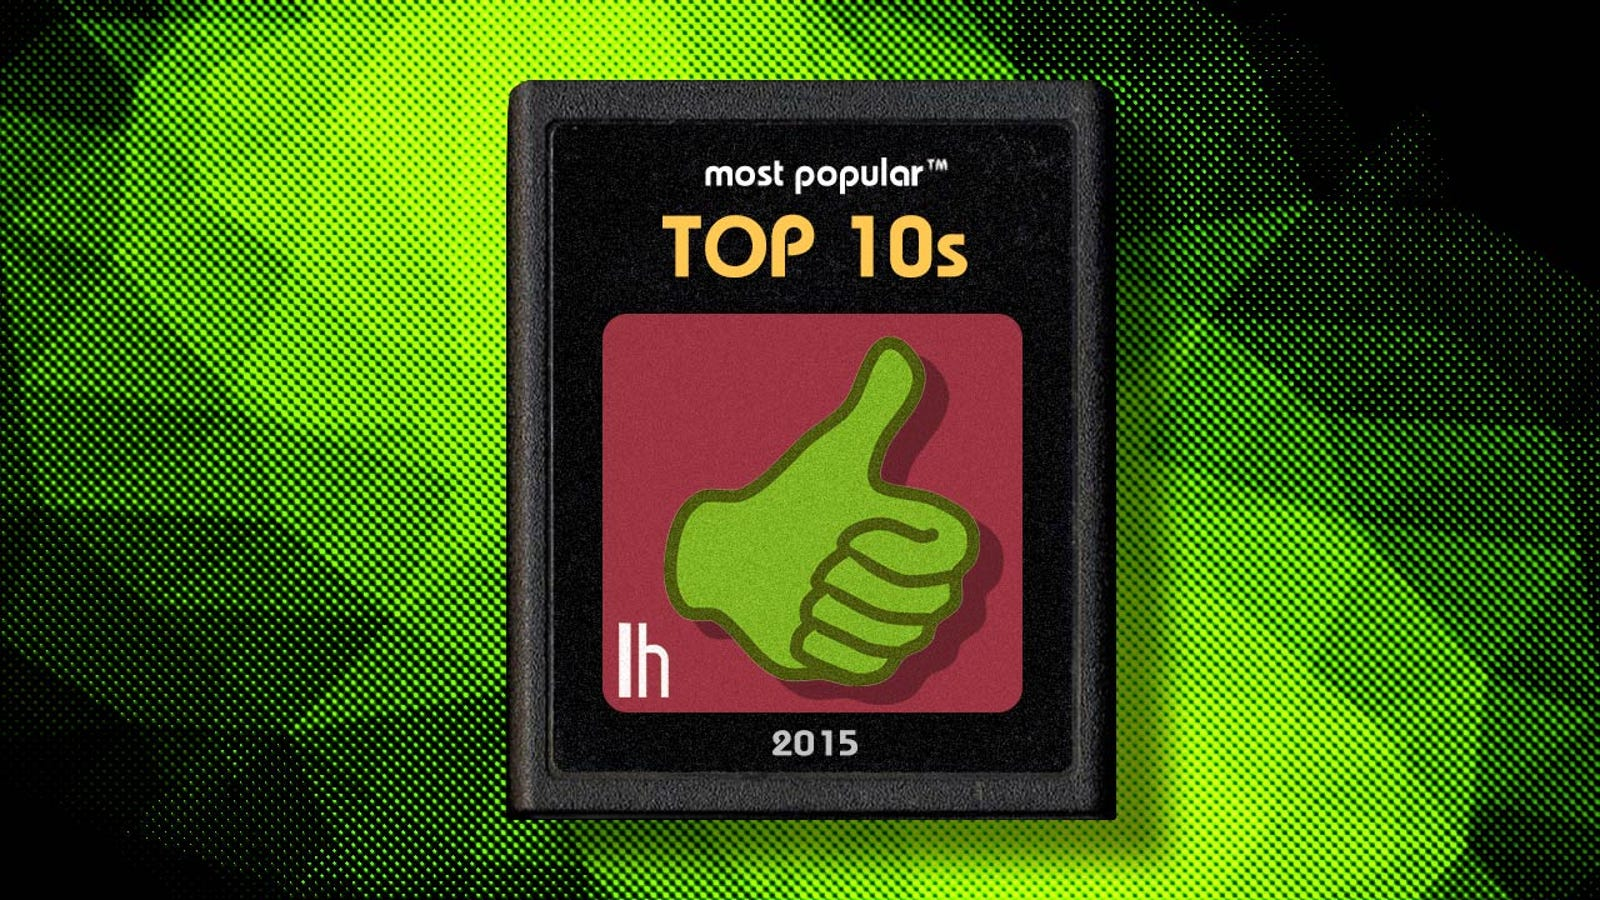 Most Popular Top 10s of 2015